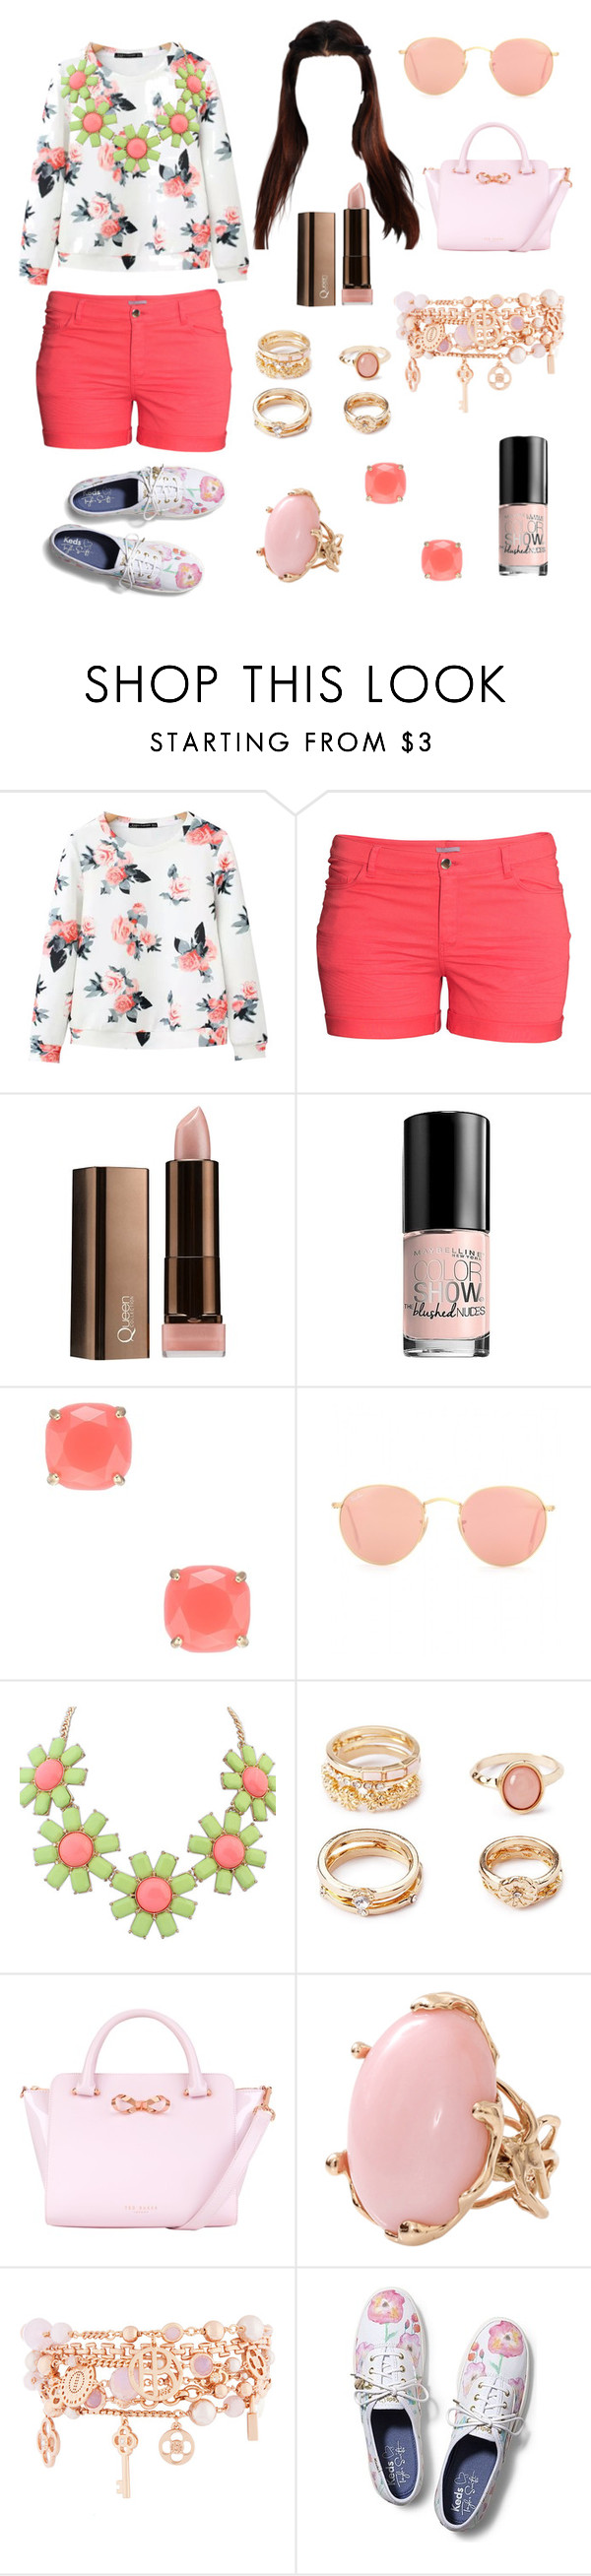 """""""Clinging to Summer"""" by evilbutchhag ❤ liked on Polyvore featuring Chicnova Fashion, H&M, COVERGIRL, Maybelline, Kate Spade, Ray-Ban, Forever 21, Ted Baker, Lucifer Vir Honestus and Henri Bendel"""